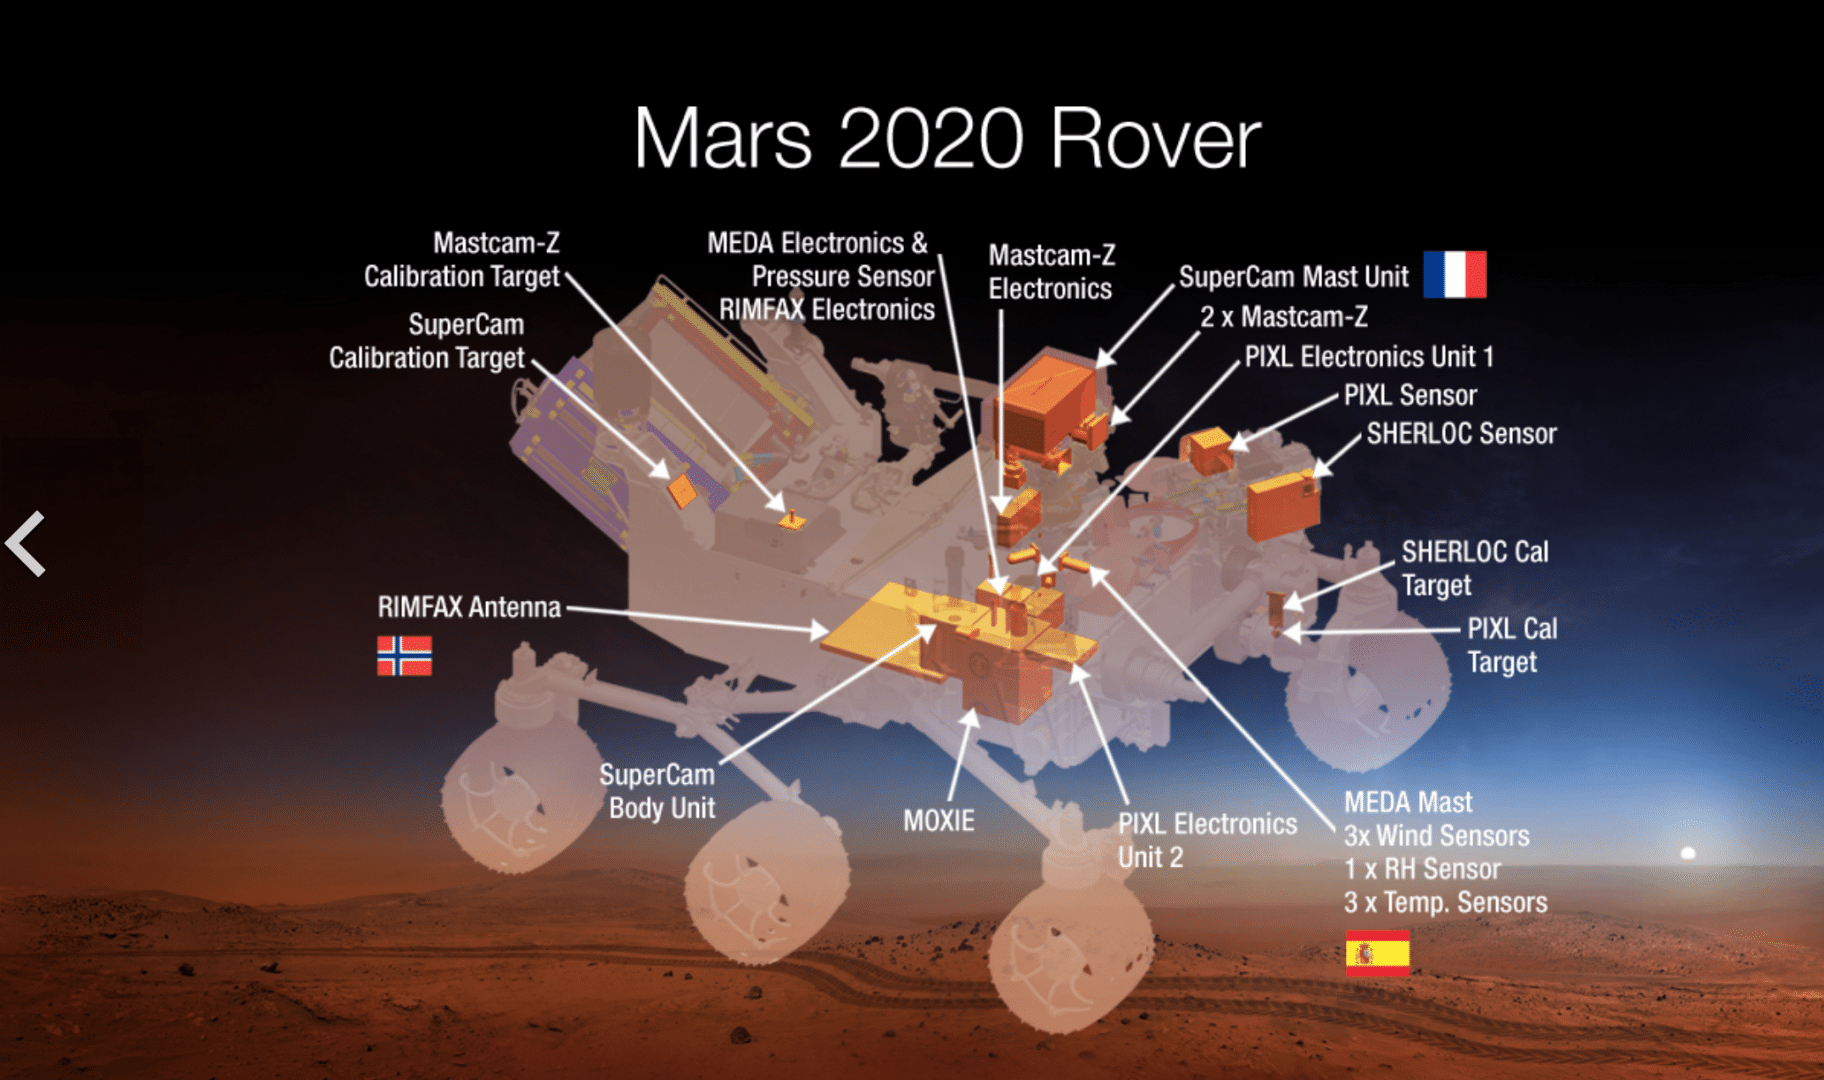 An artist concept image of where seven carefully-selected instruments will be located on NASA's Mars 2020 rover. Along with the instruments, you can have NASA send your name to Mars on this rover.